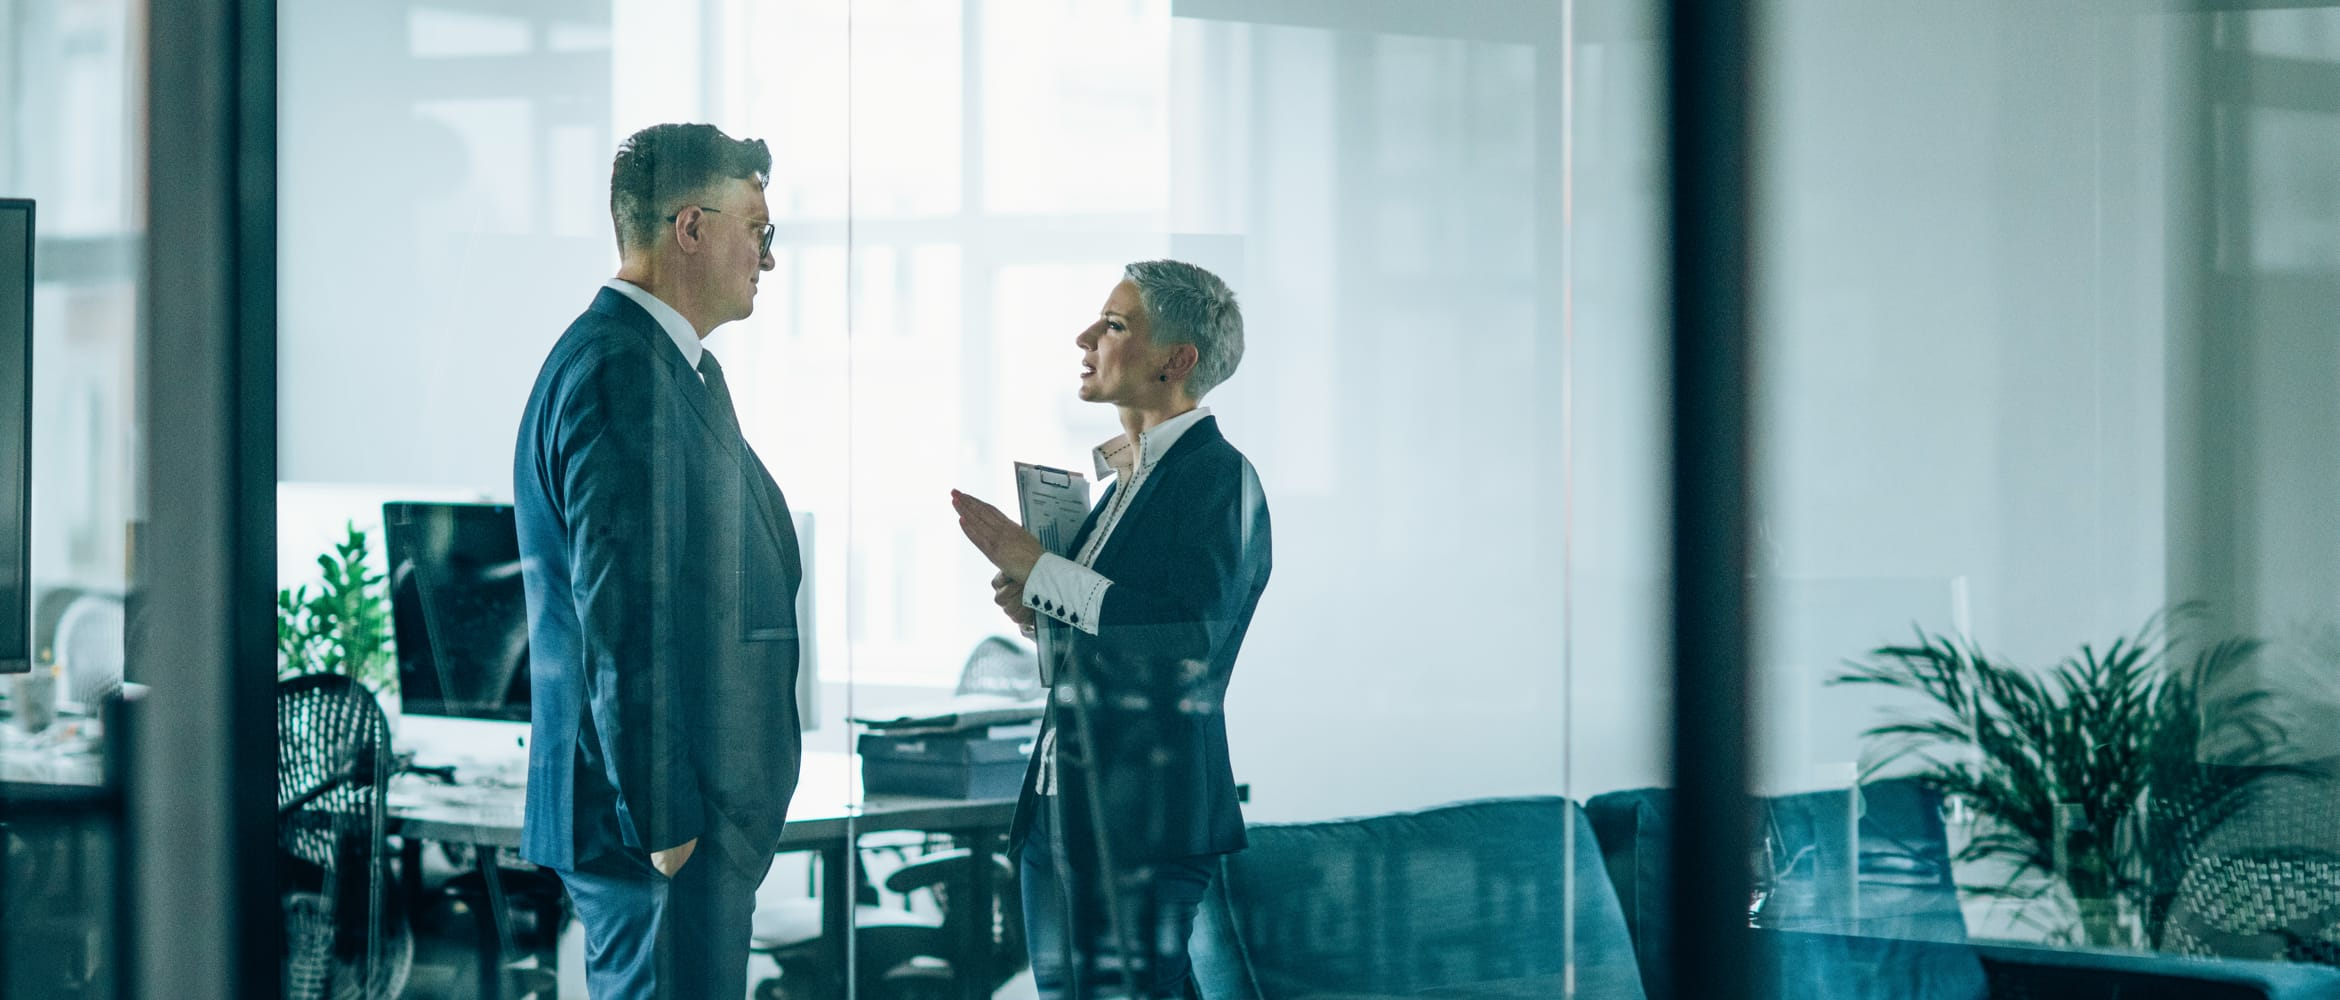 A business woman holding a clipboard and gesturing while explaining something to a business man in an office environment